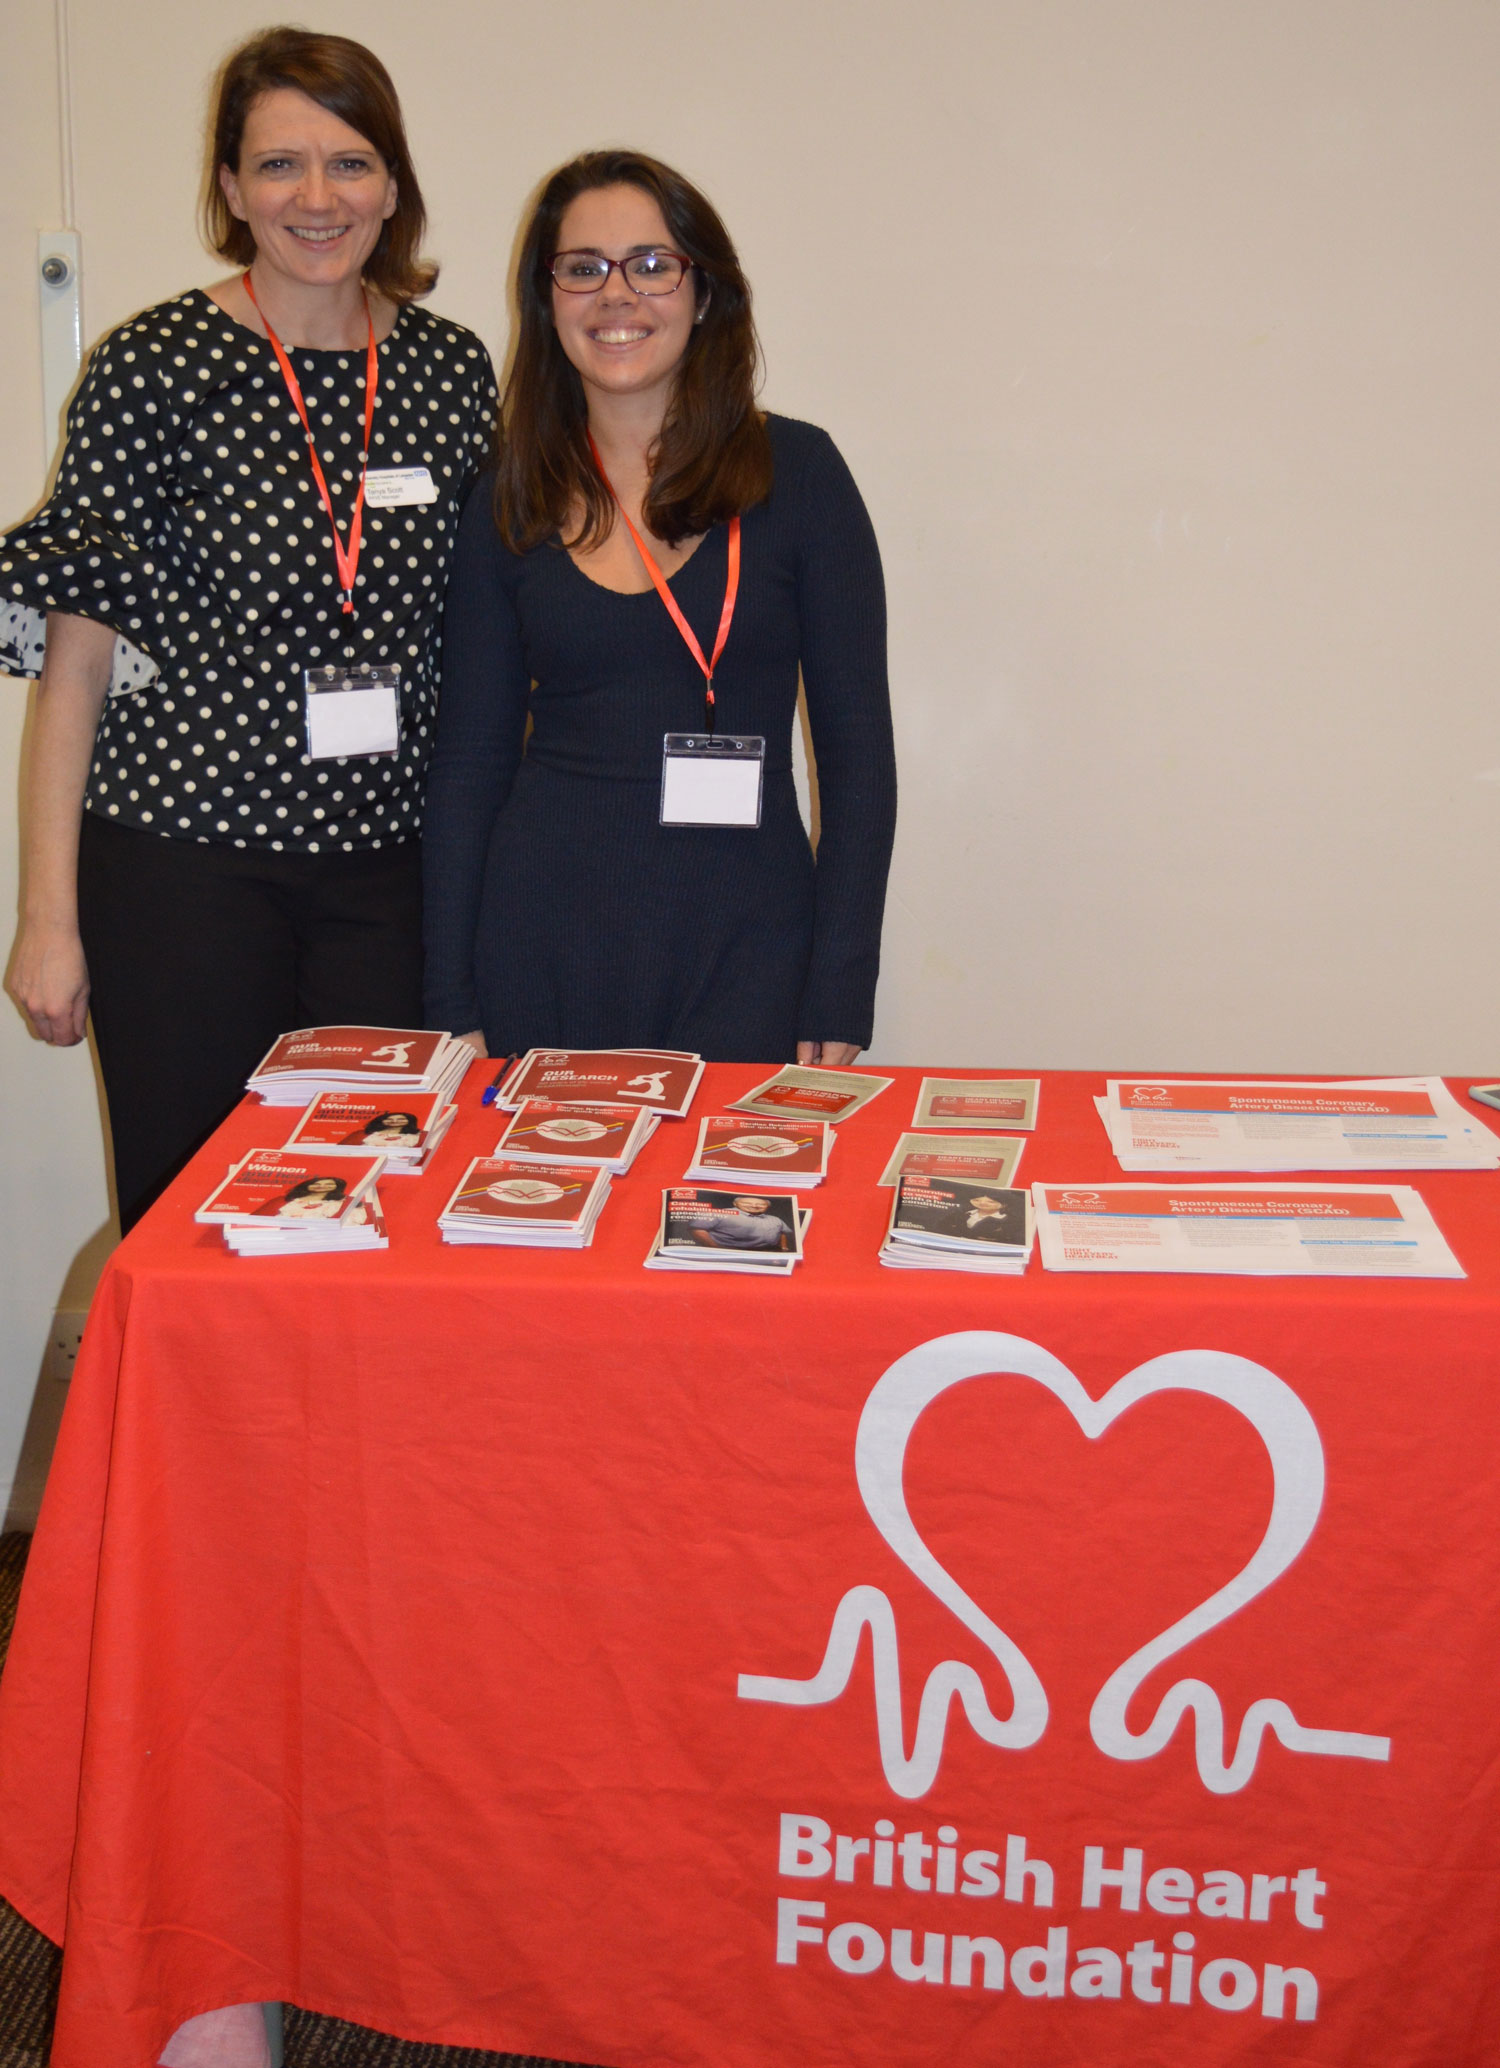 Representatives from the NIHR and BHF attended the conference